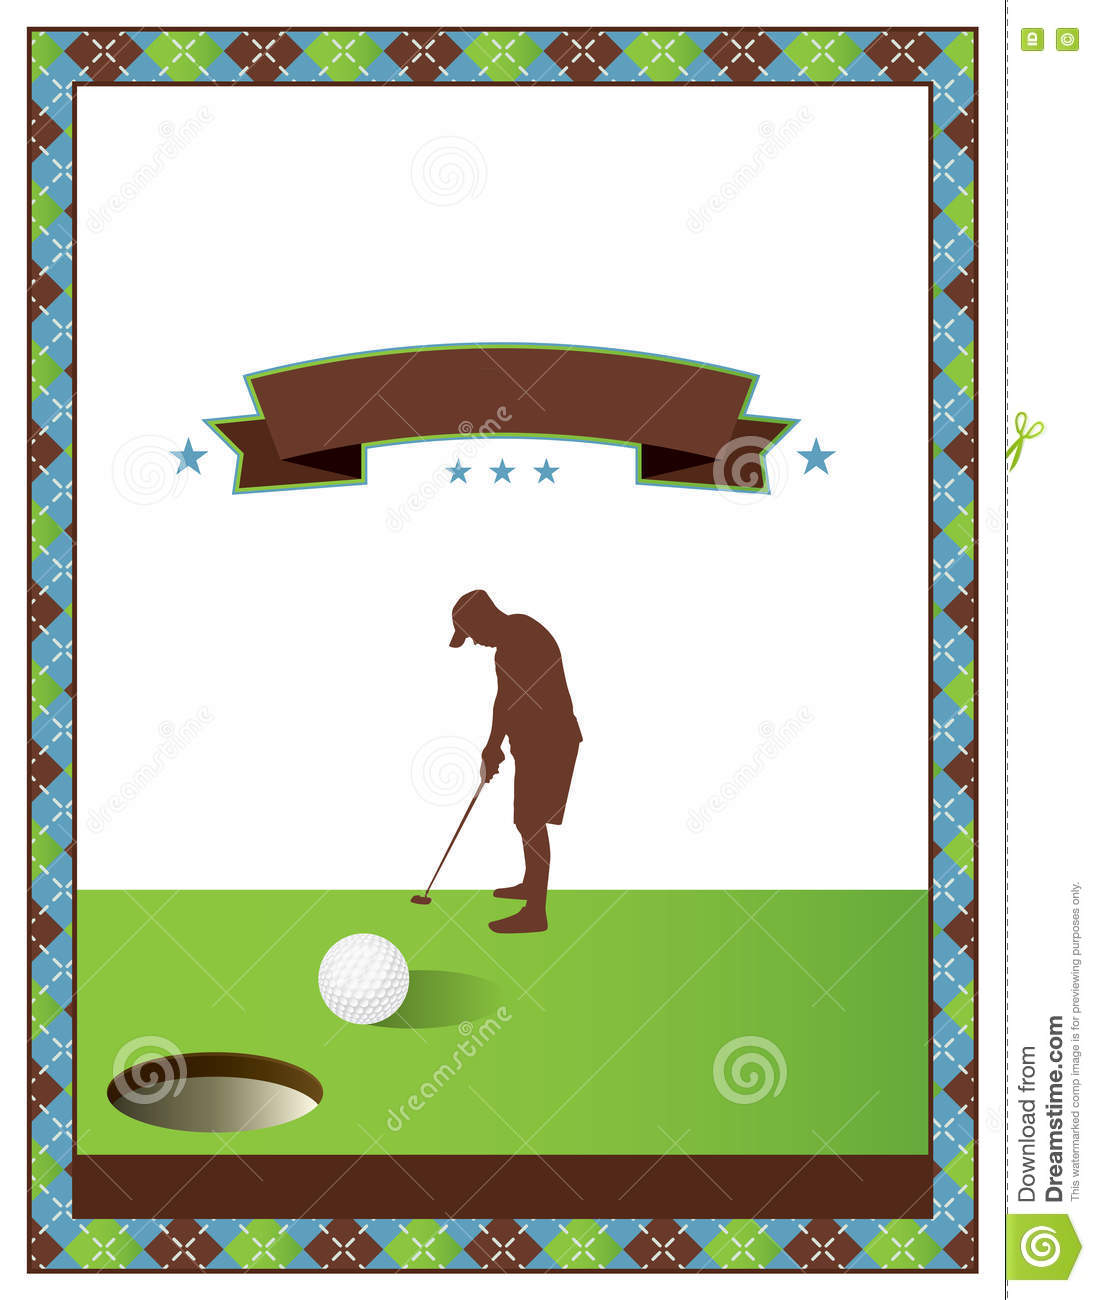 blank golf tournament flyer template stock vector illustration of